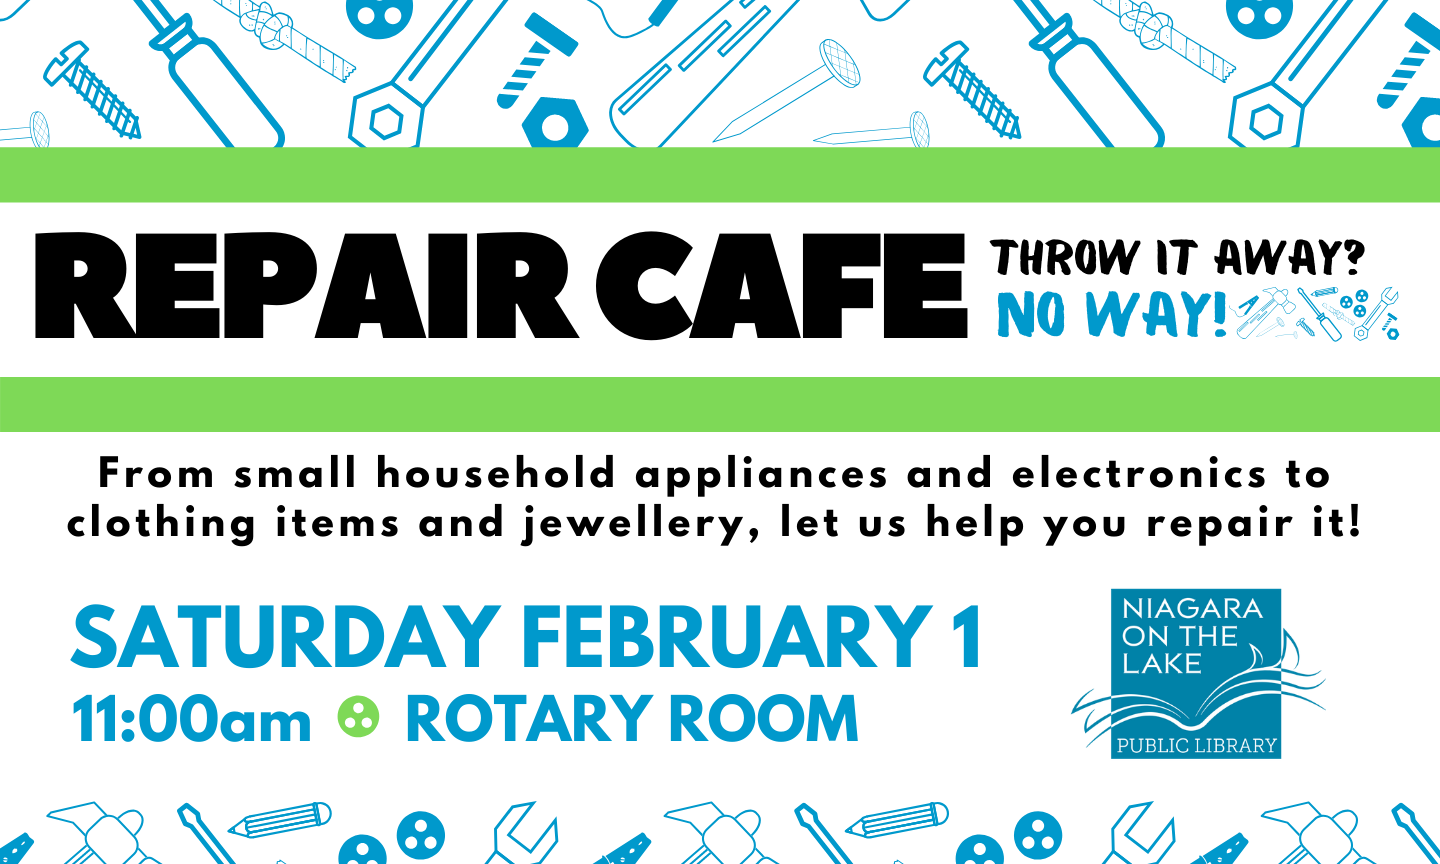 Repair Cafe February 1st at 11am